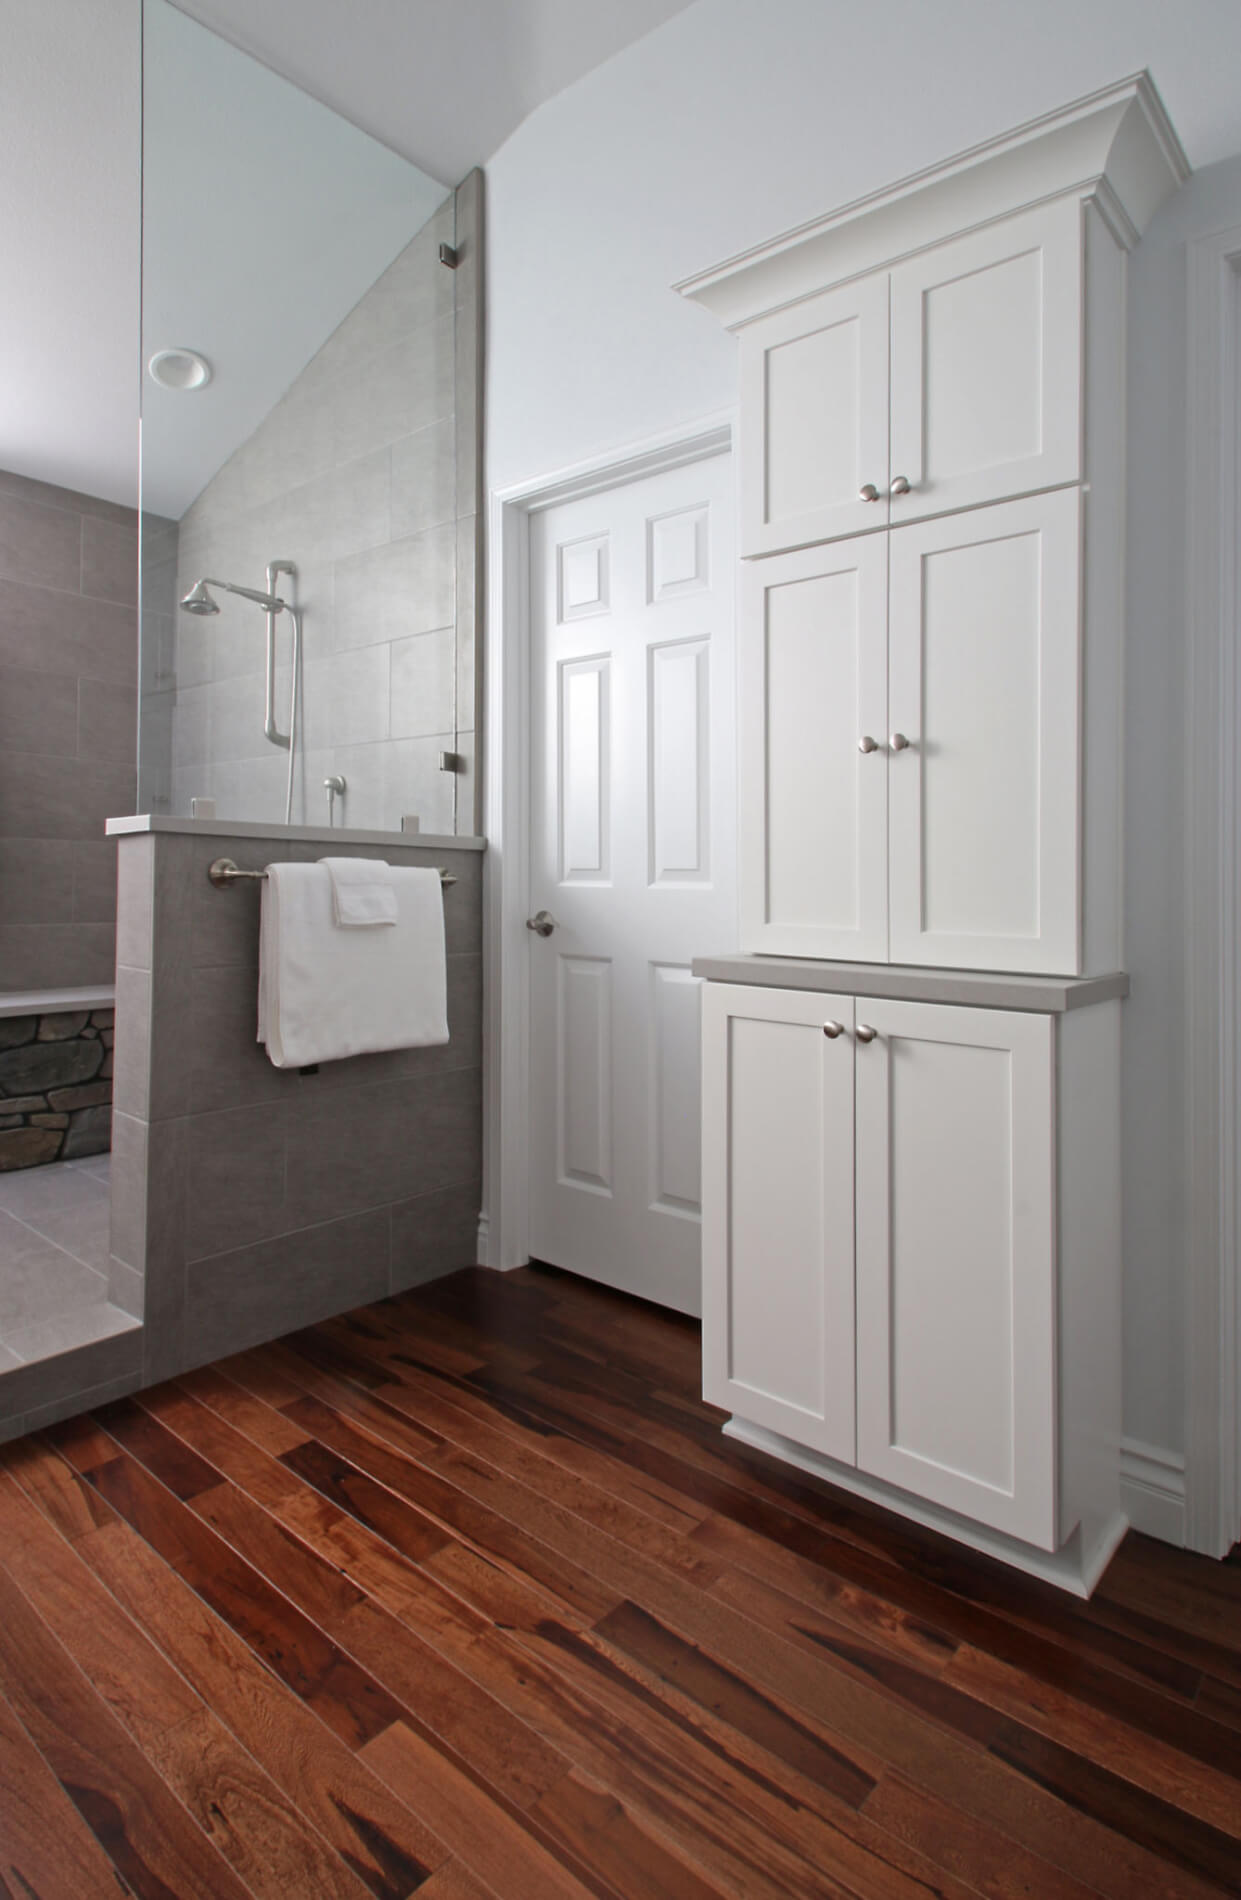 Bathroom Storage Remodel Newport Beach, Newport Beach Storage in Bathroom, Orange County Home Remodeling